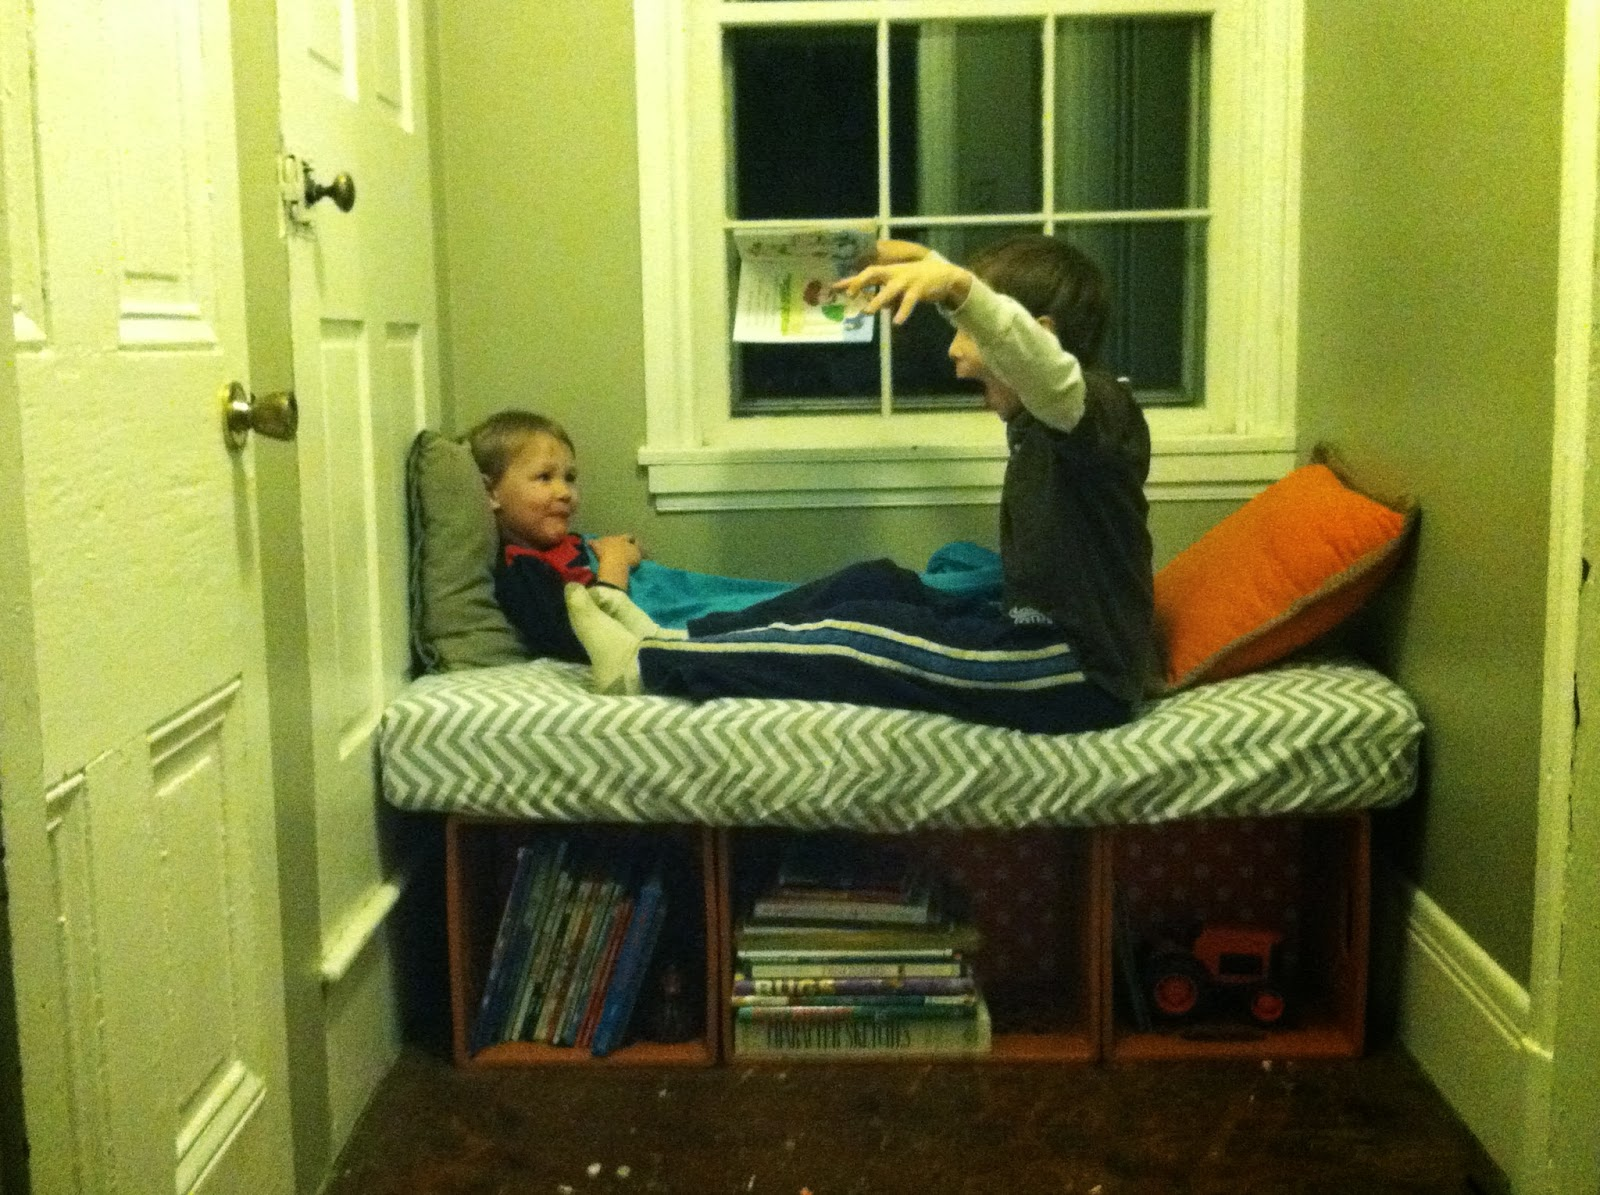 Calculating Blessings: Blessing #223 - The Reading Nook Bench